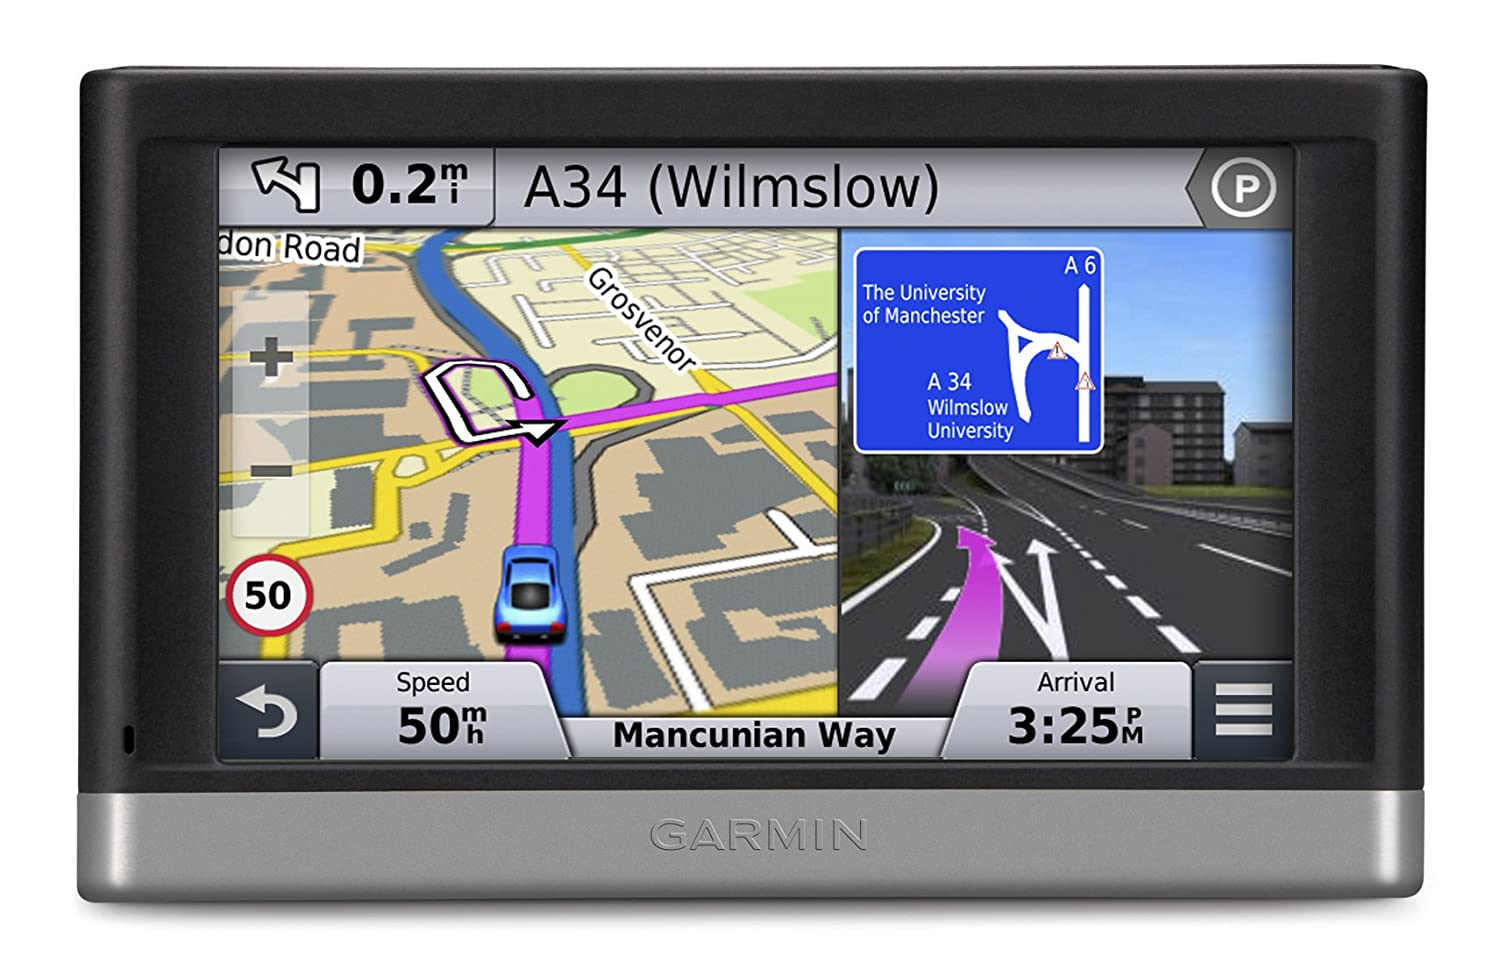 Garmin Nuvi 2597LMT 5 inch Satellite Navigation with UK and Full Europe Maps Free Lifetime Map Updates and Traffic Alerts Bluetooth